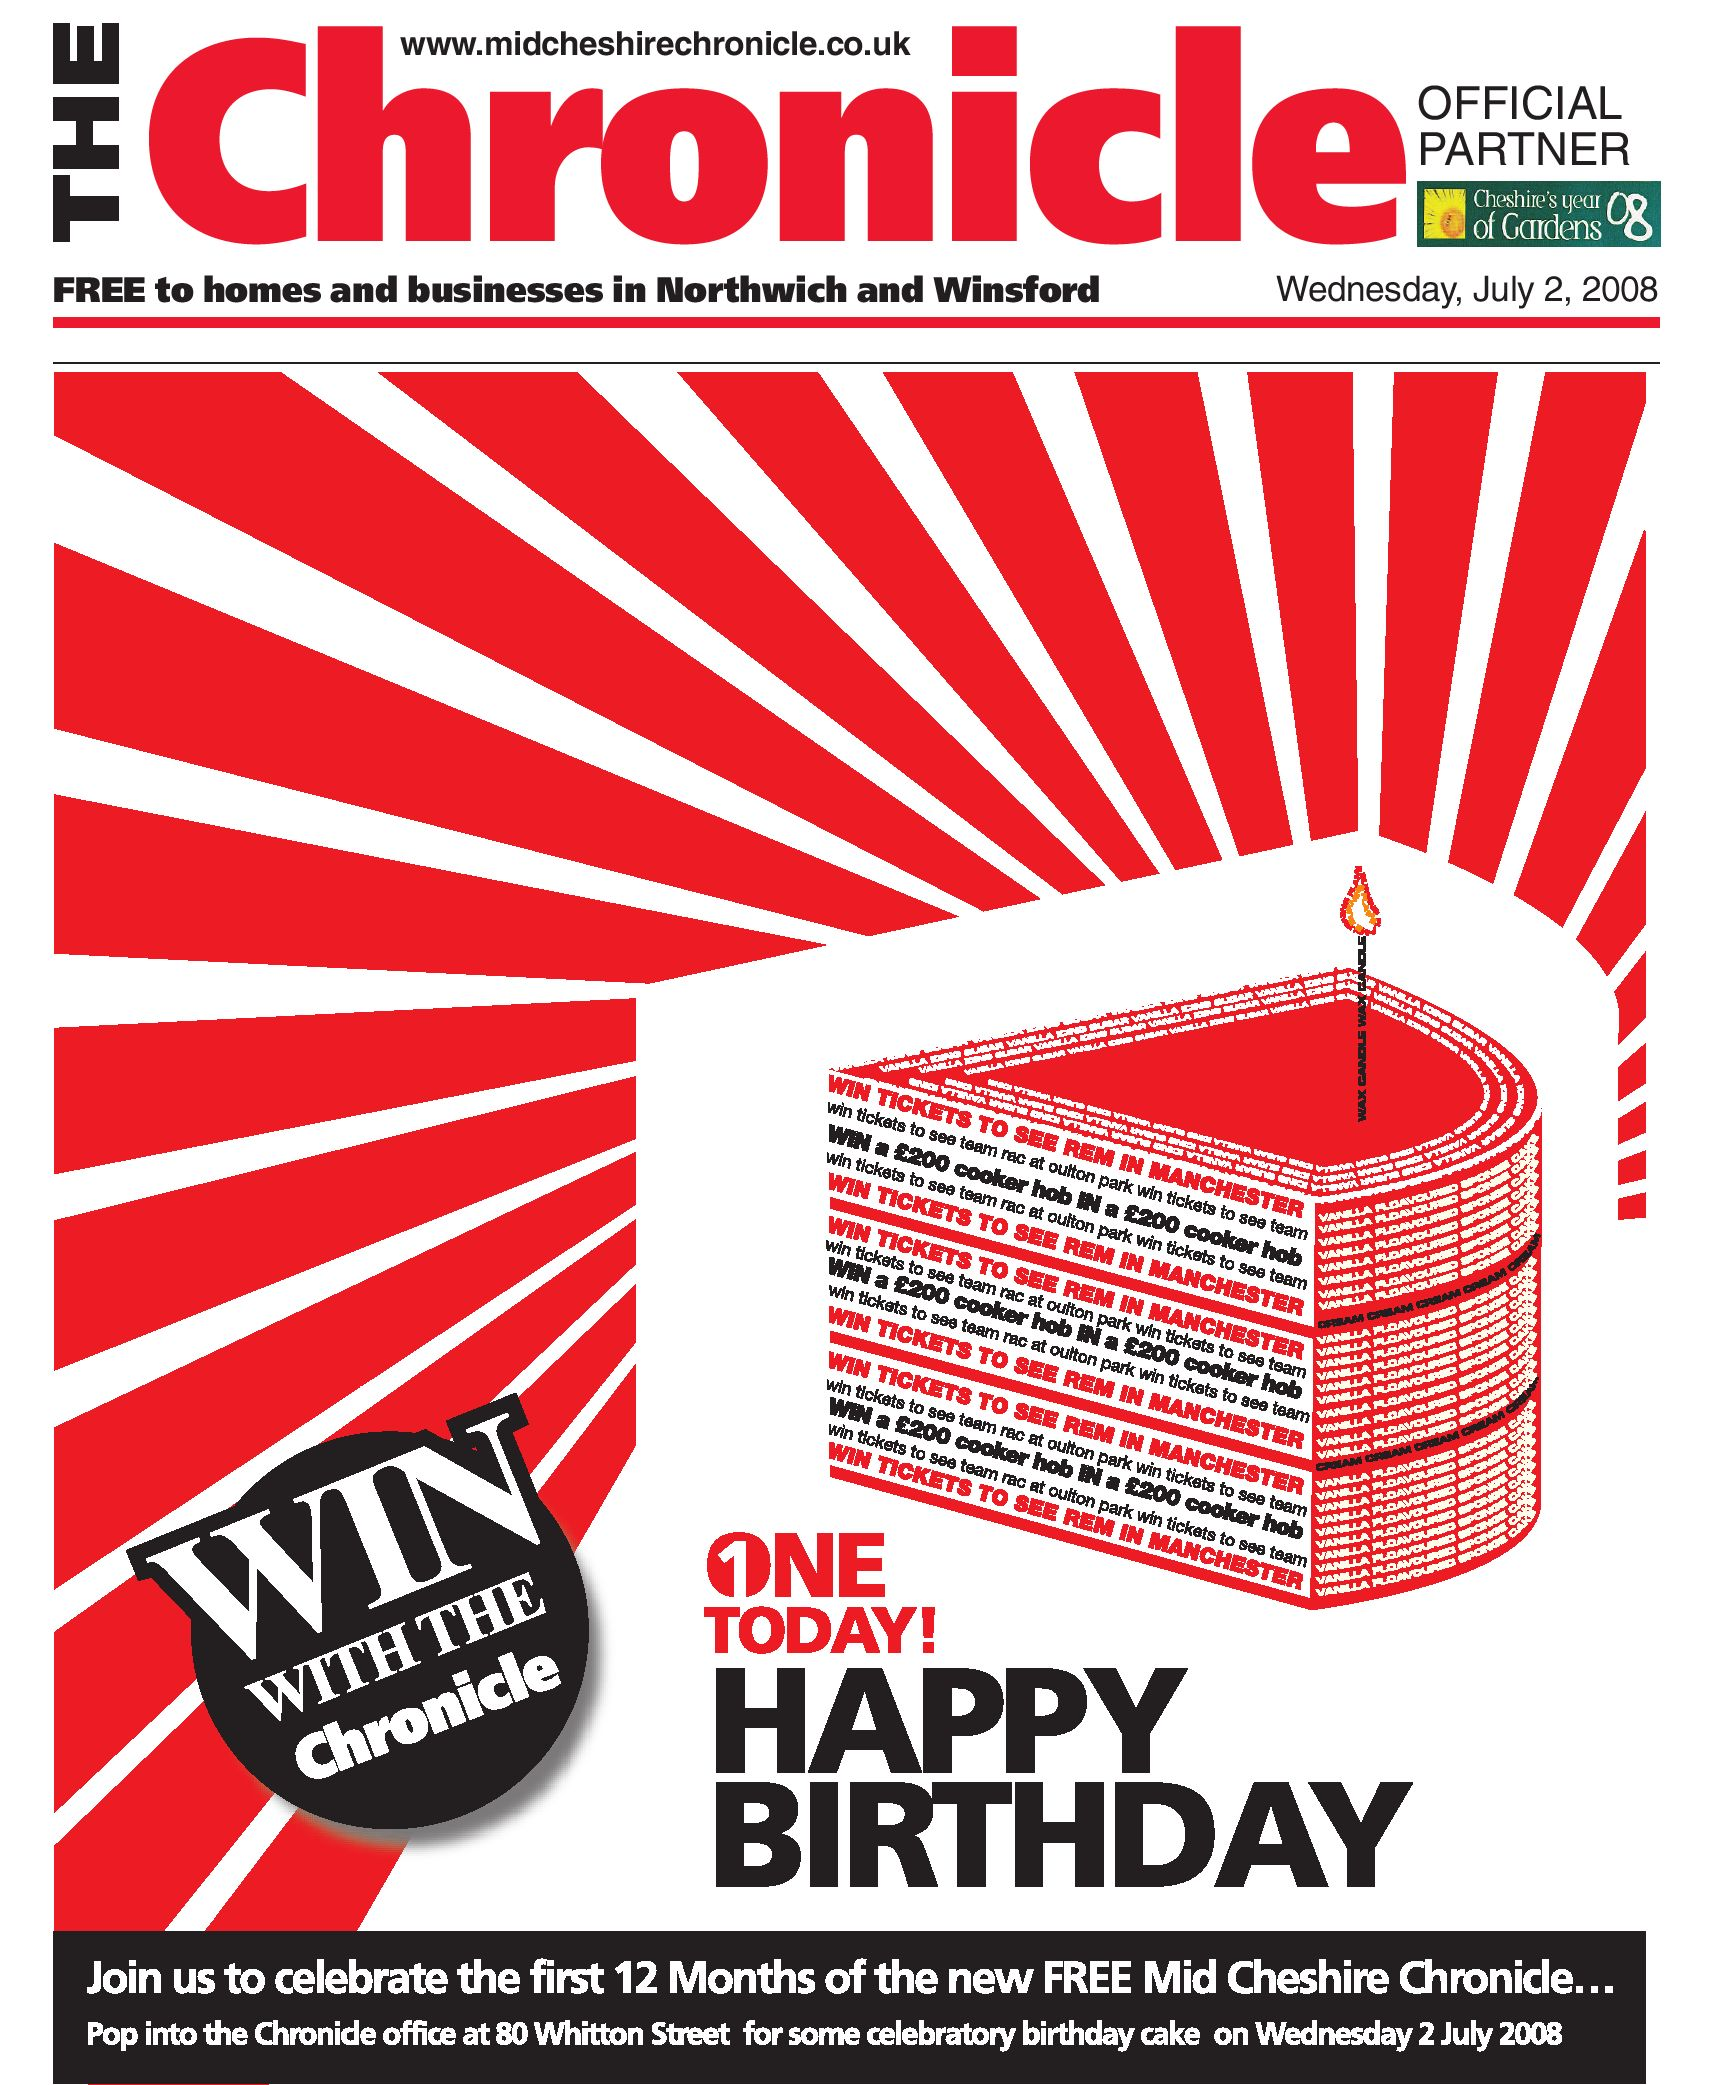 Marvelous Mid Cheshire Chronicle  By James Shepherd  Issuu With Engaging Hills Garden Centre Besides Cranleigh Garden Machinery Furthermore Garden Torch Candles With Astonishing Garden Shes Also Downham Market Garden Centre In Addition Hiding Bins In The Garden And What Happened In The Garden Of Eden As Well As Desk Garden Additionally Garden Loppers Argos From Issuucom With   Engaging Mid Cheshire Chronicle  By James Shepherd  Issuu With Astonishing Hills Garden Centre Besides Cranleigh Garden Machinery Furthermore Garden Torch Candles And Marvelous Garden Shes Also Downham Market Garden Centre In Addition Hiding Bins In The Garden From Issuucom